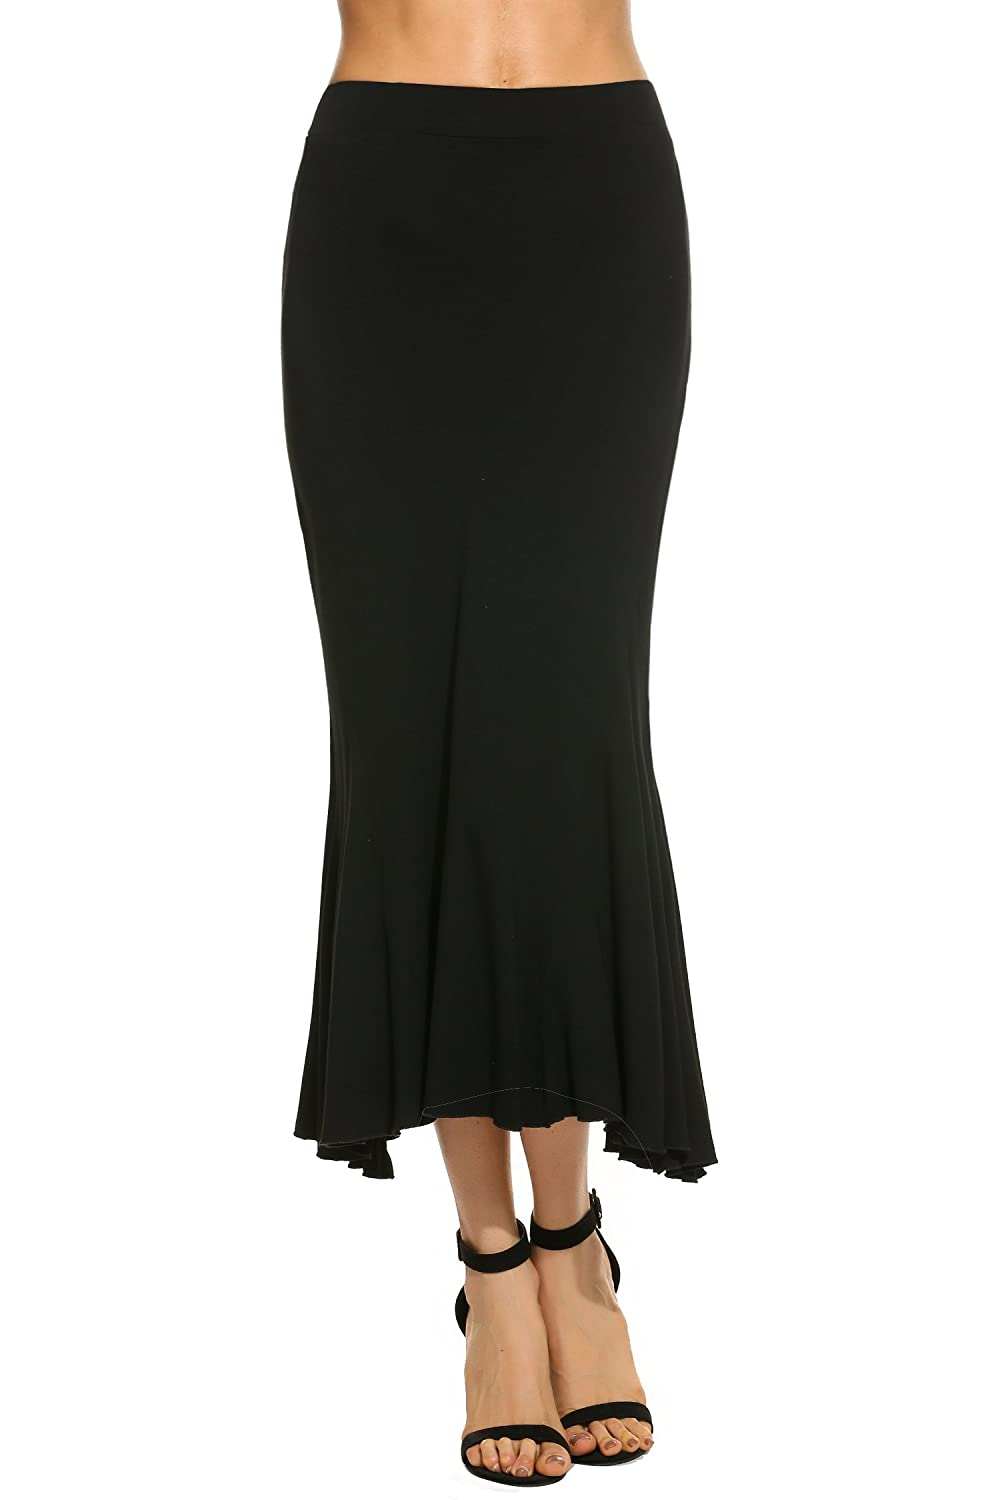 Retro Skirts: Vintage, Pencil, Circle, & Plus Sizes Womens Fishtail Mermaid Stylish Stretchy Slim Fit Long Sexy Skirt Zeagoo(Dark GrayBlack) $24.99 AT vintagedancer.com